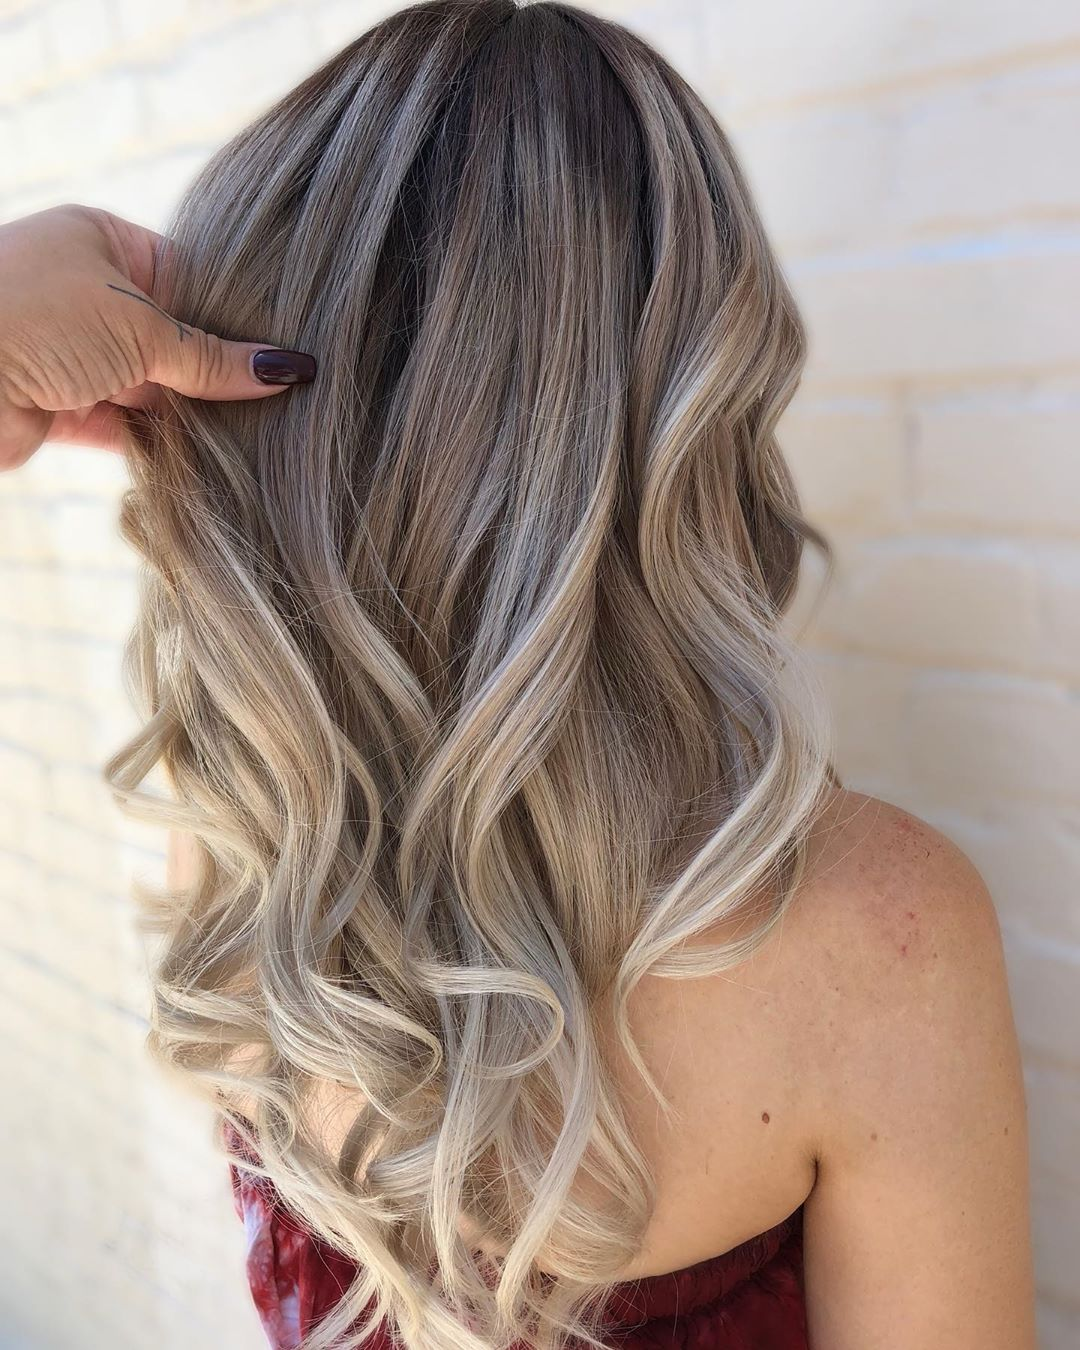 Dusty Blonde Balayage Hair